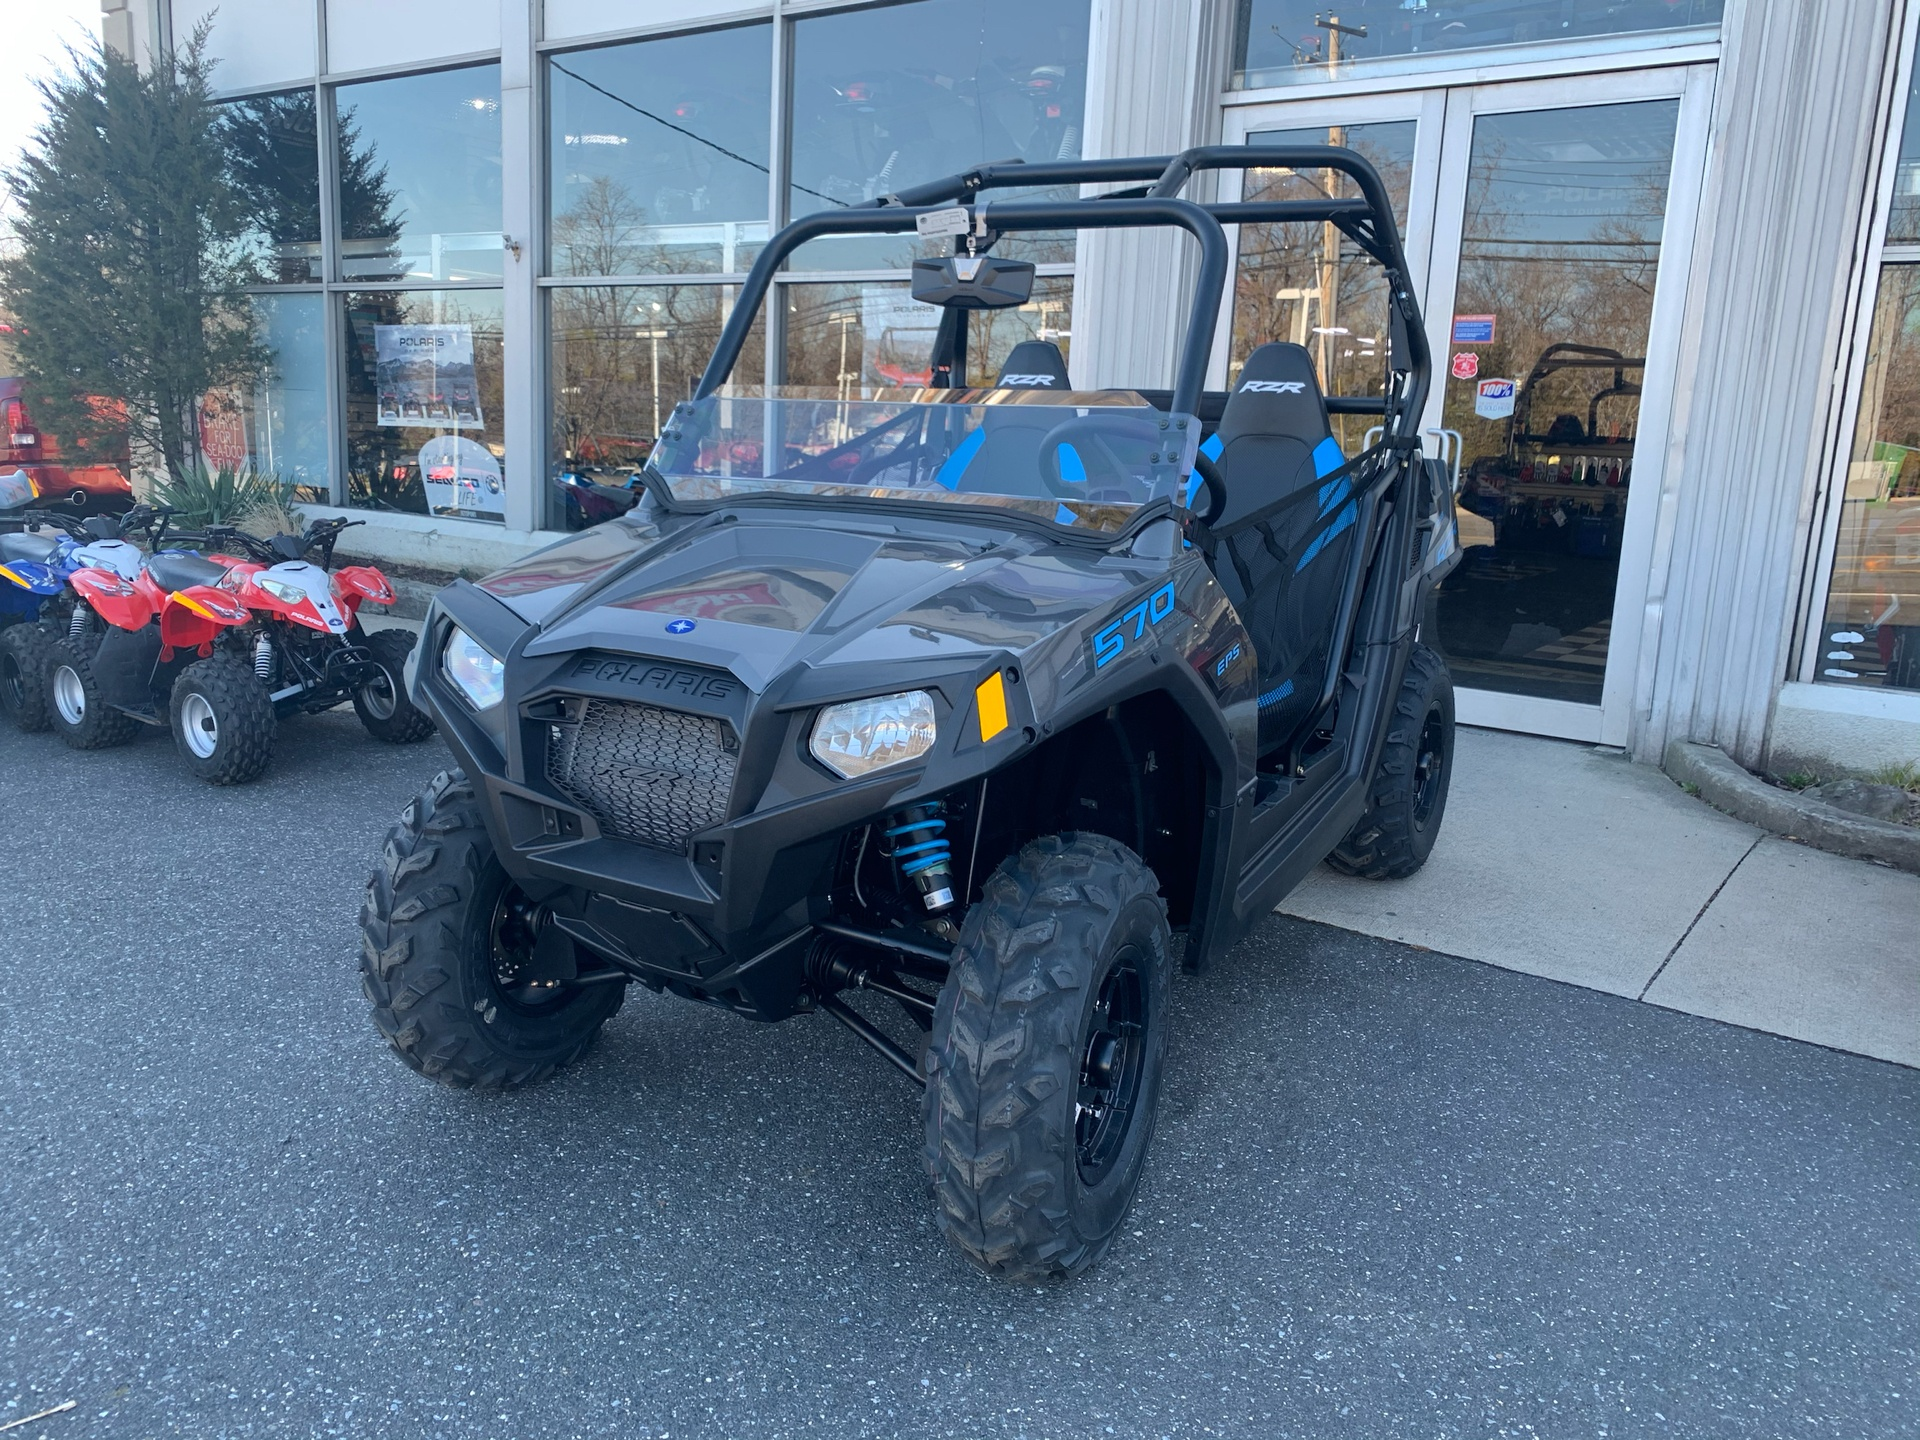 2020 Polaris RZR 570 Premium in Huntington Station, New York - Photo 3